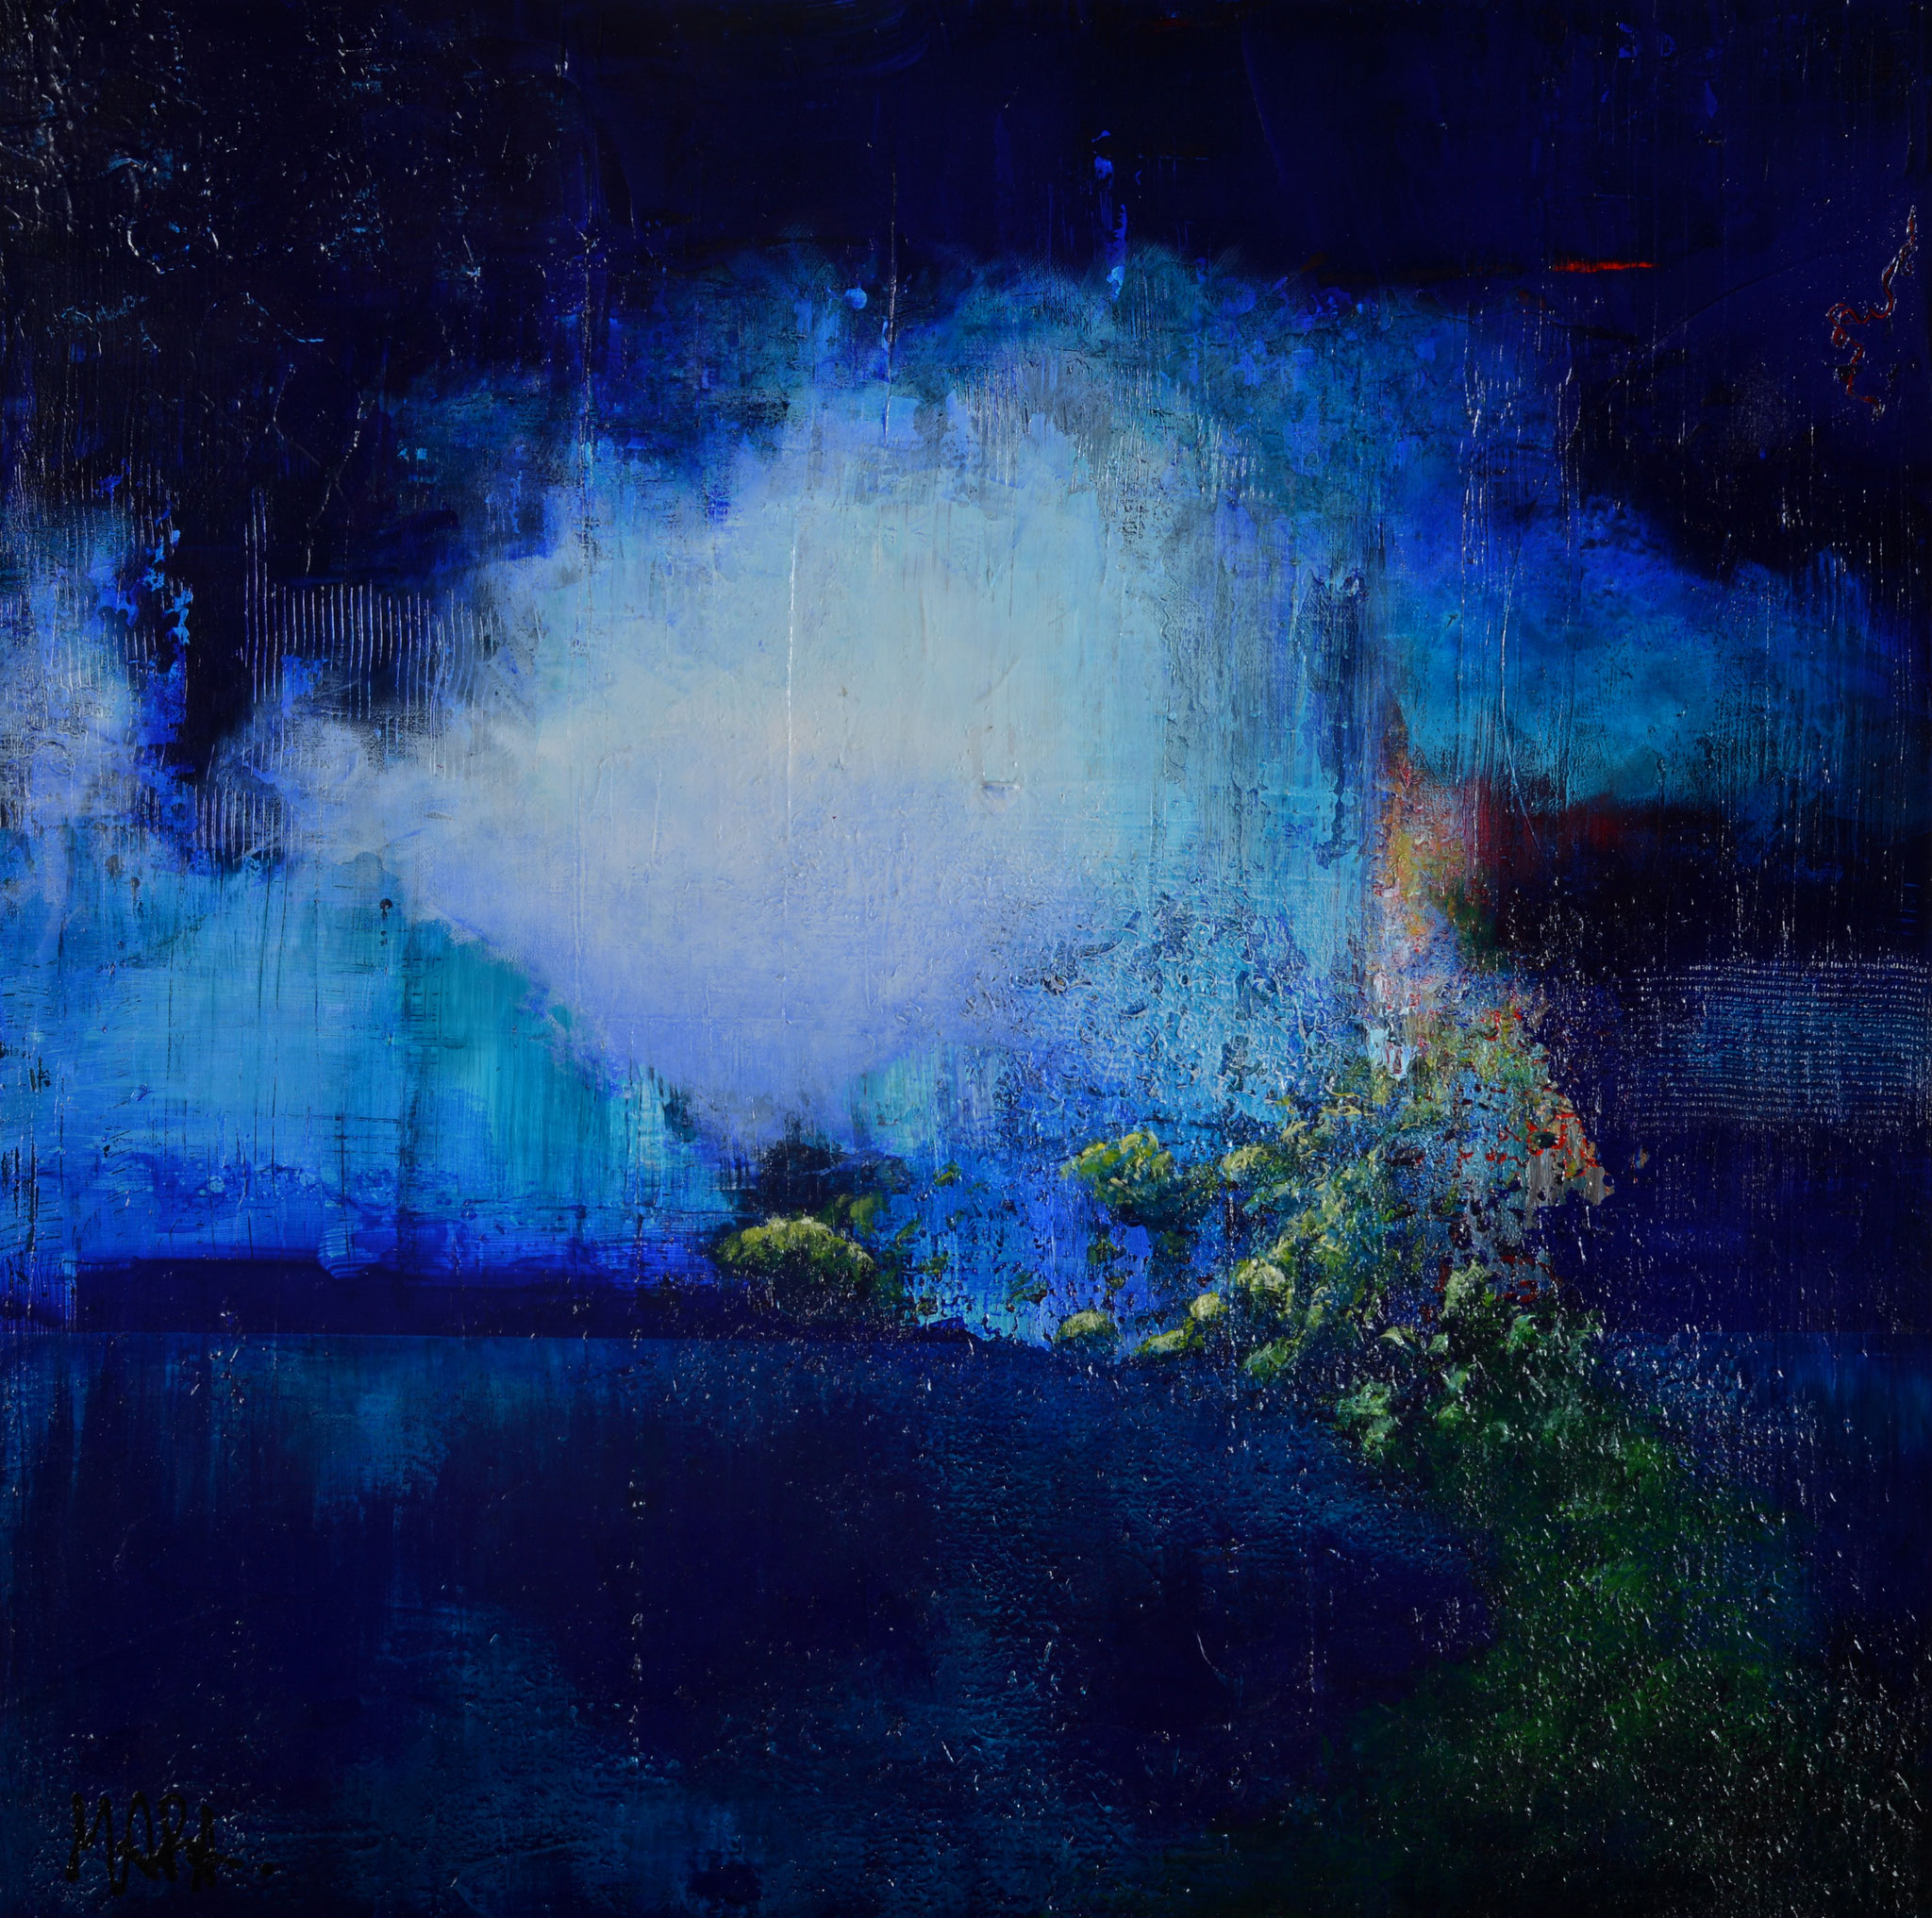 Exaltation - 60x60 cm - sold